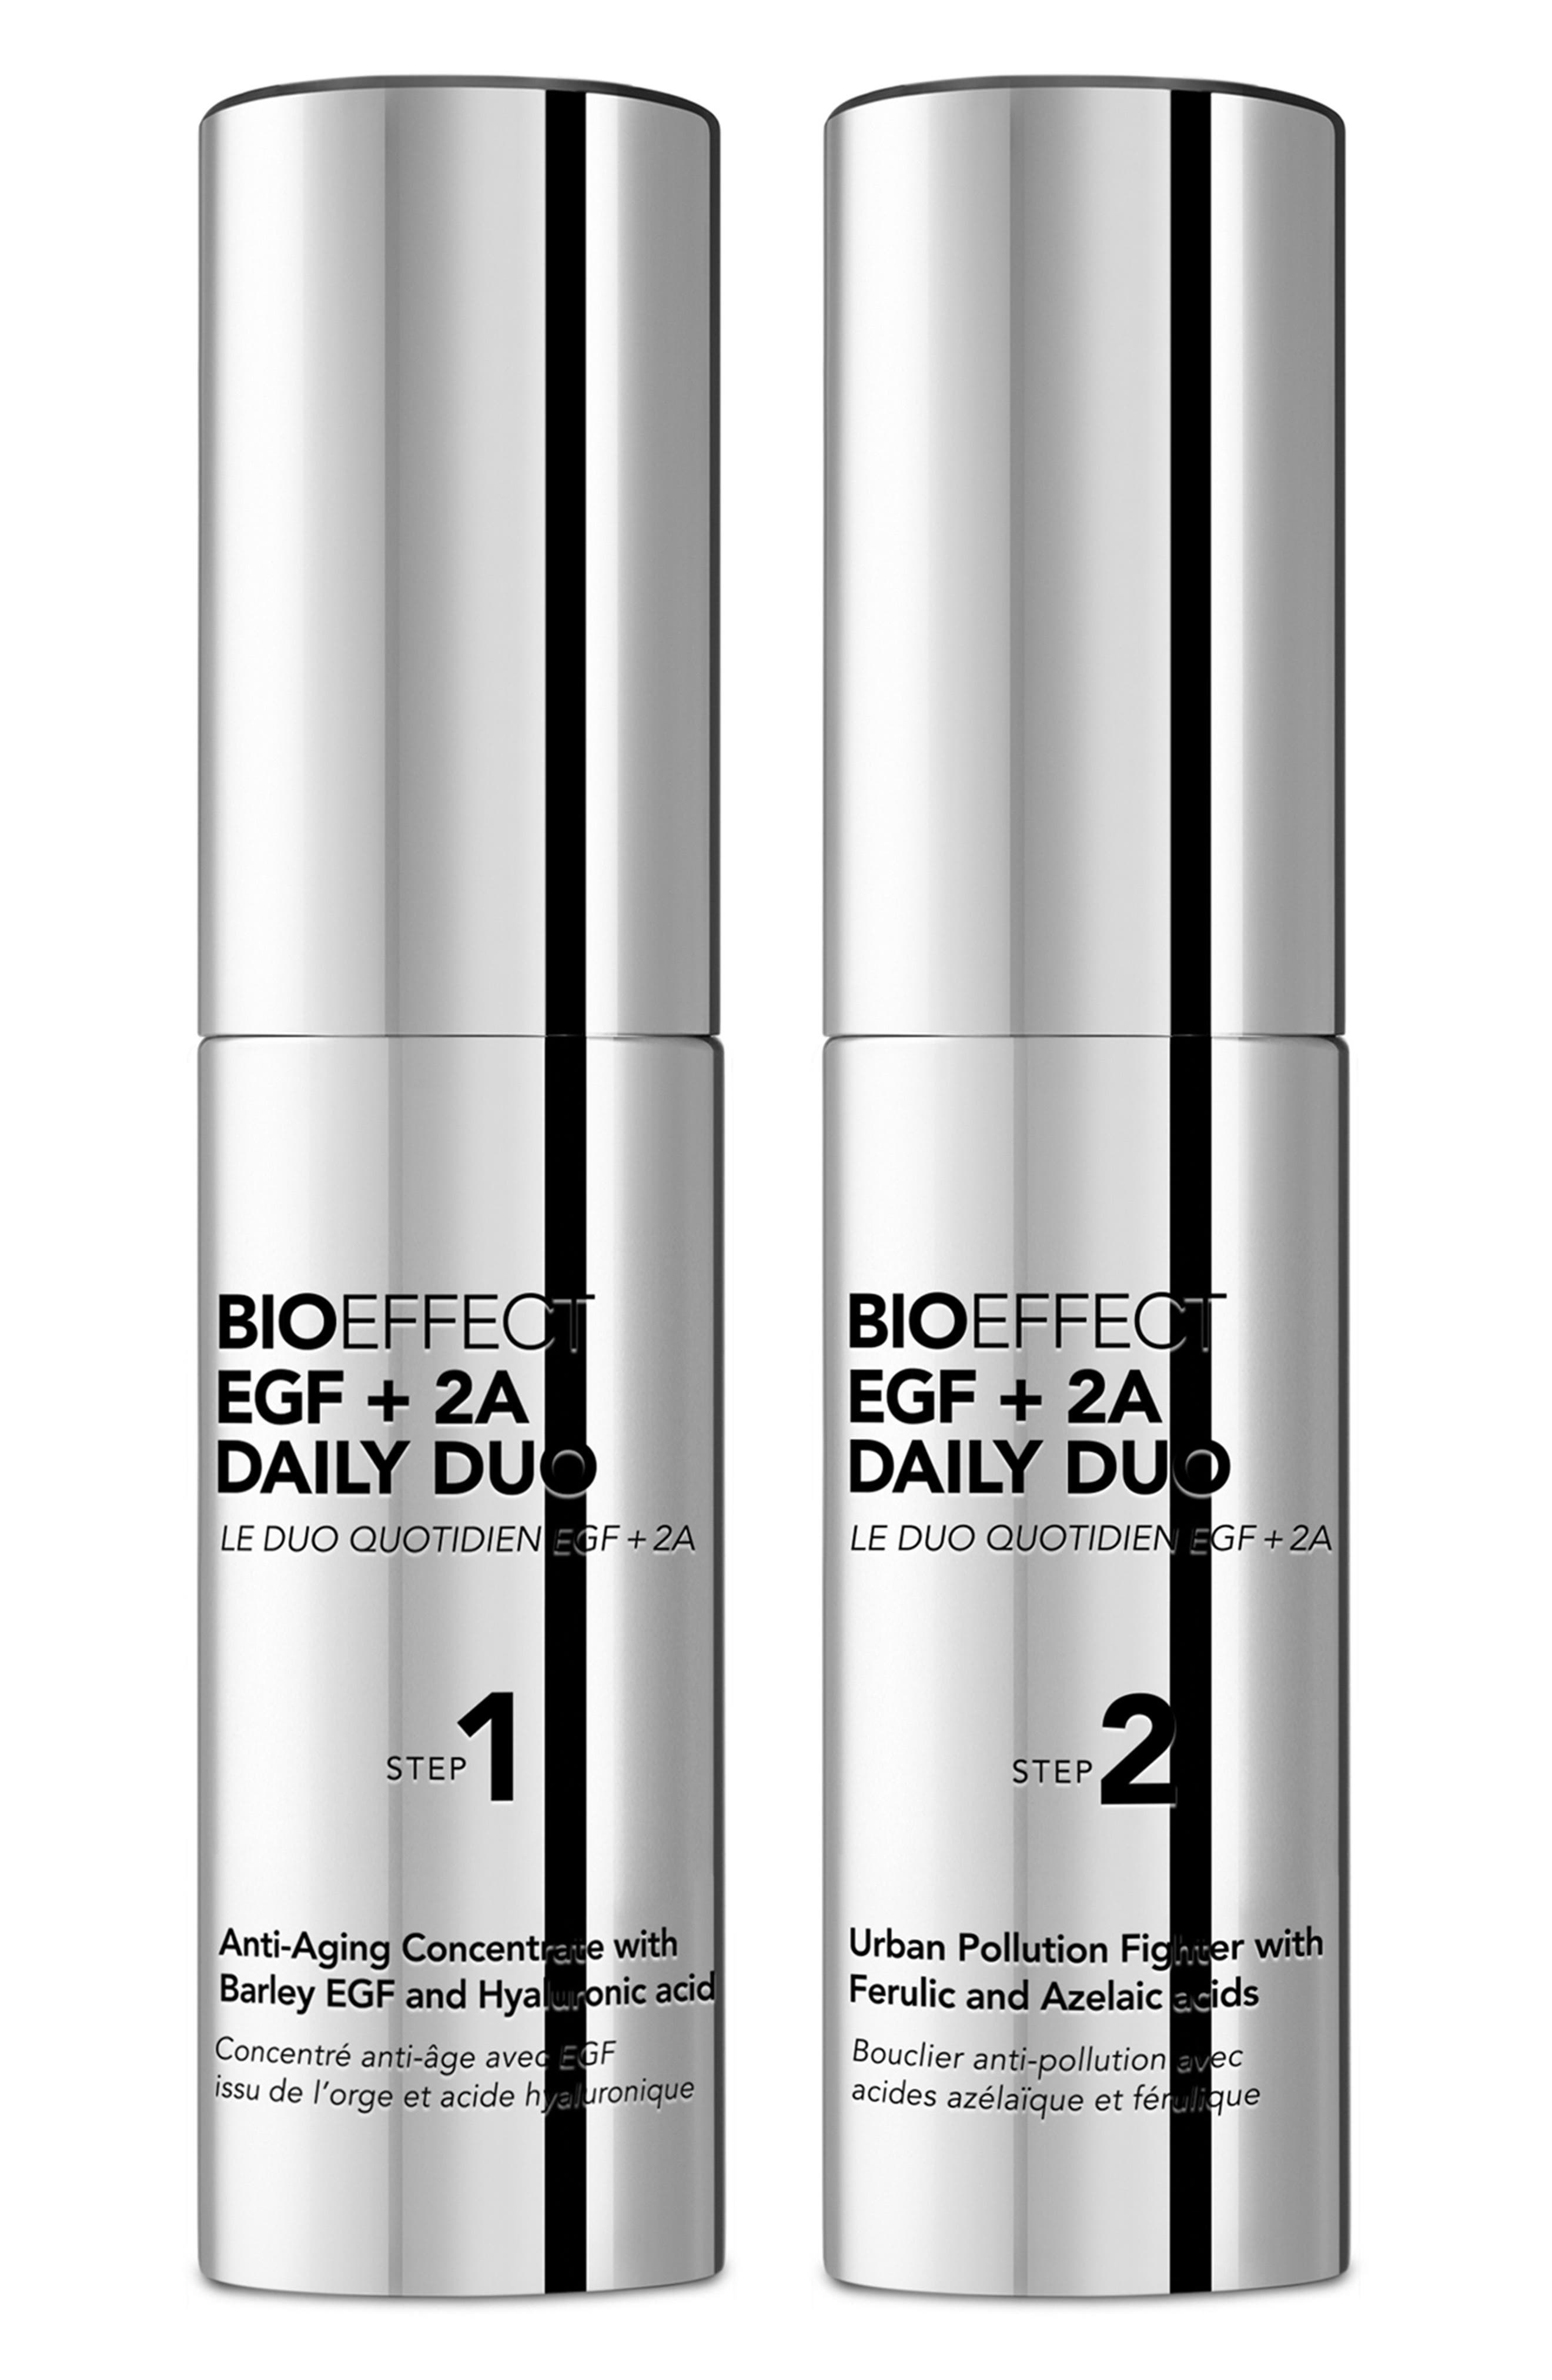 Egf + 2A Daily Duo Two-Step Serum